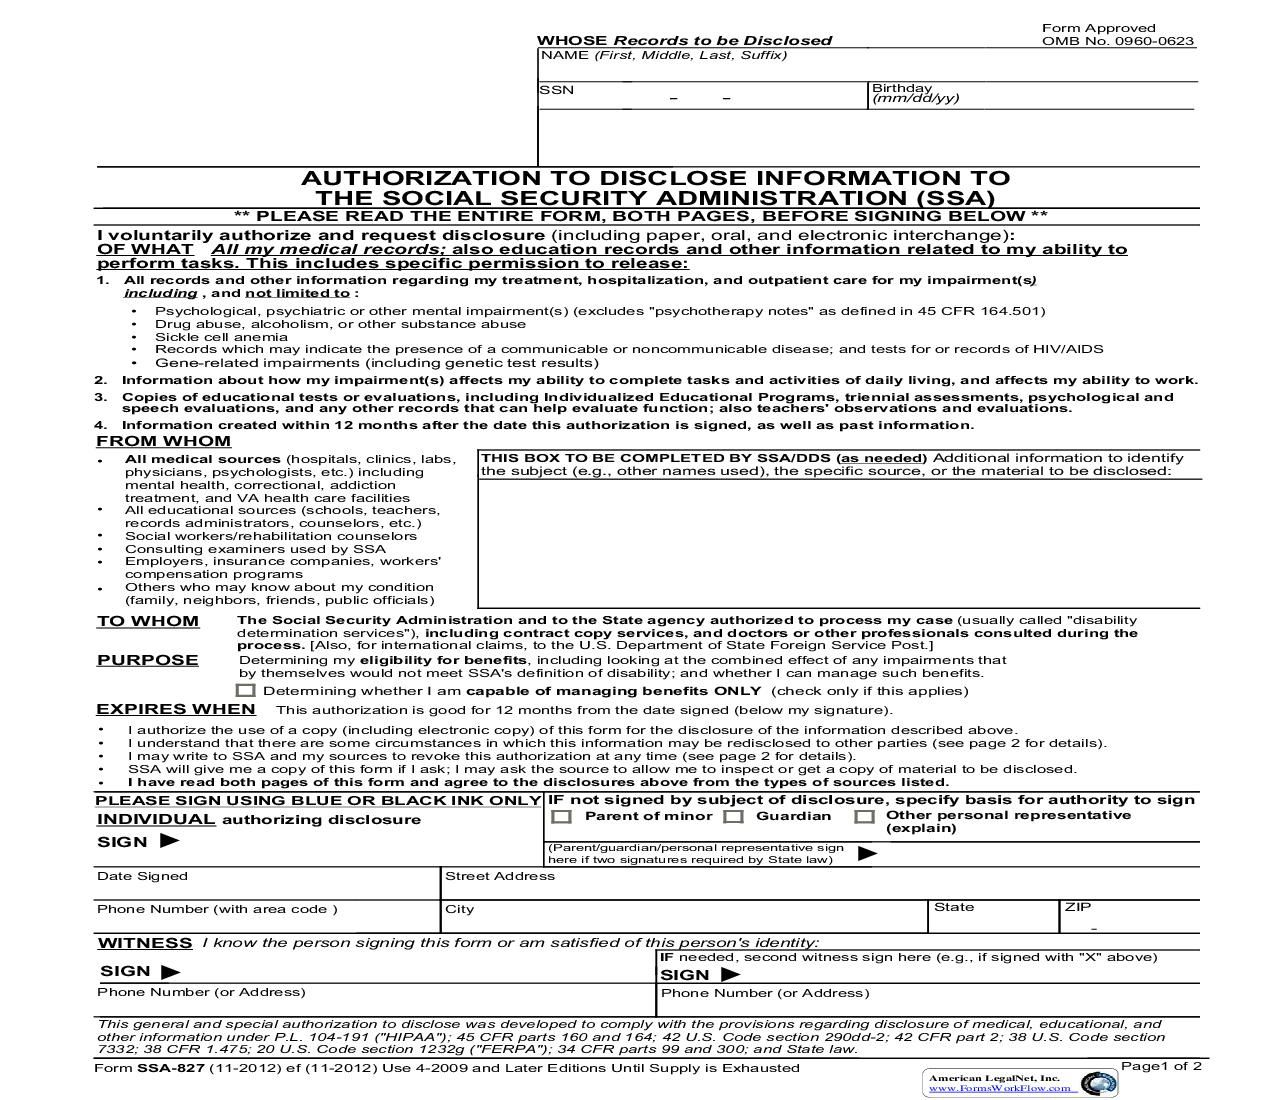 This Is A Official Federal Forms Form That Can Be Used For